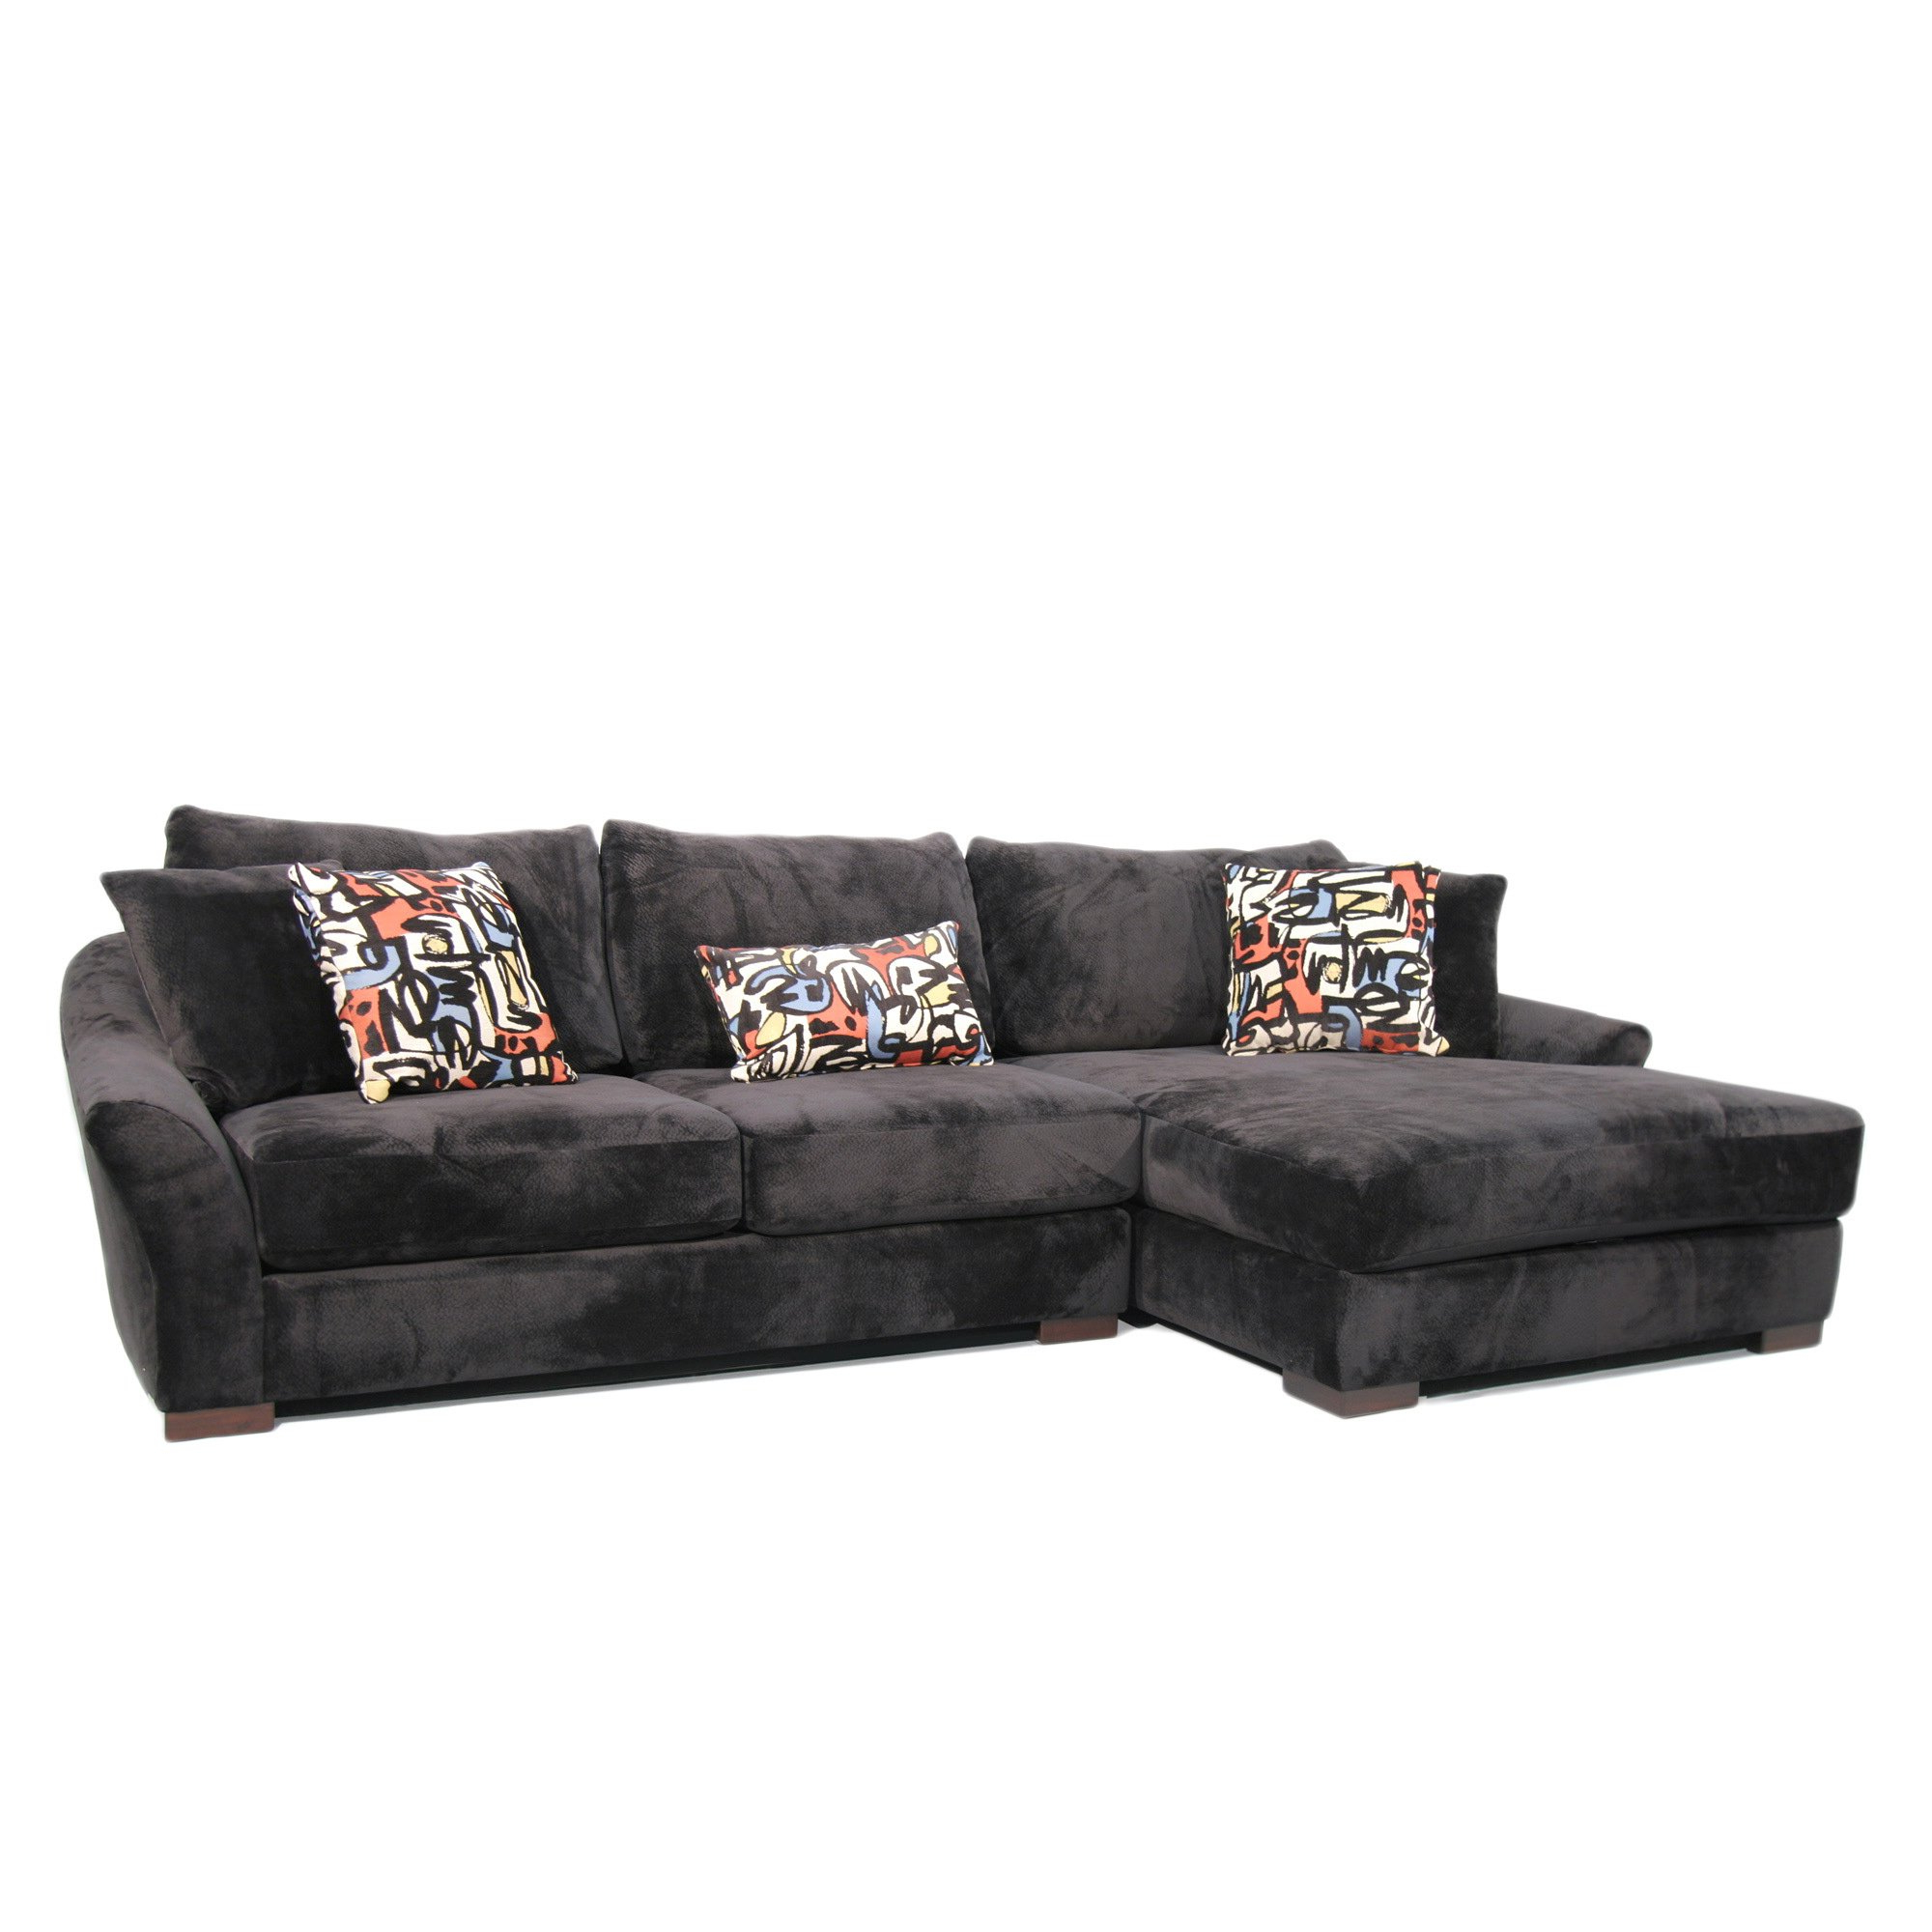 Newest Harper Foam 3 Piece Sectionals With Raf Chaise Within Shop Fairmont Designs Made To Order Audrey 3 Piece Ebony Sectional (View 14 of 20)